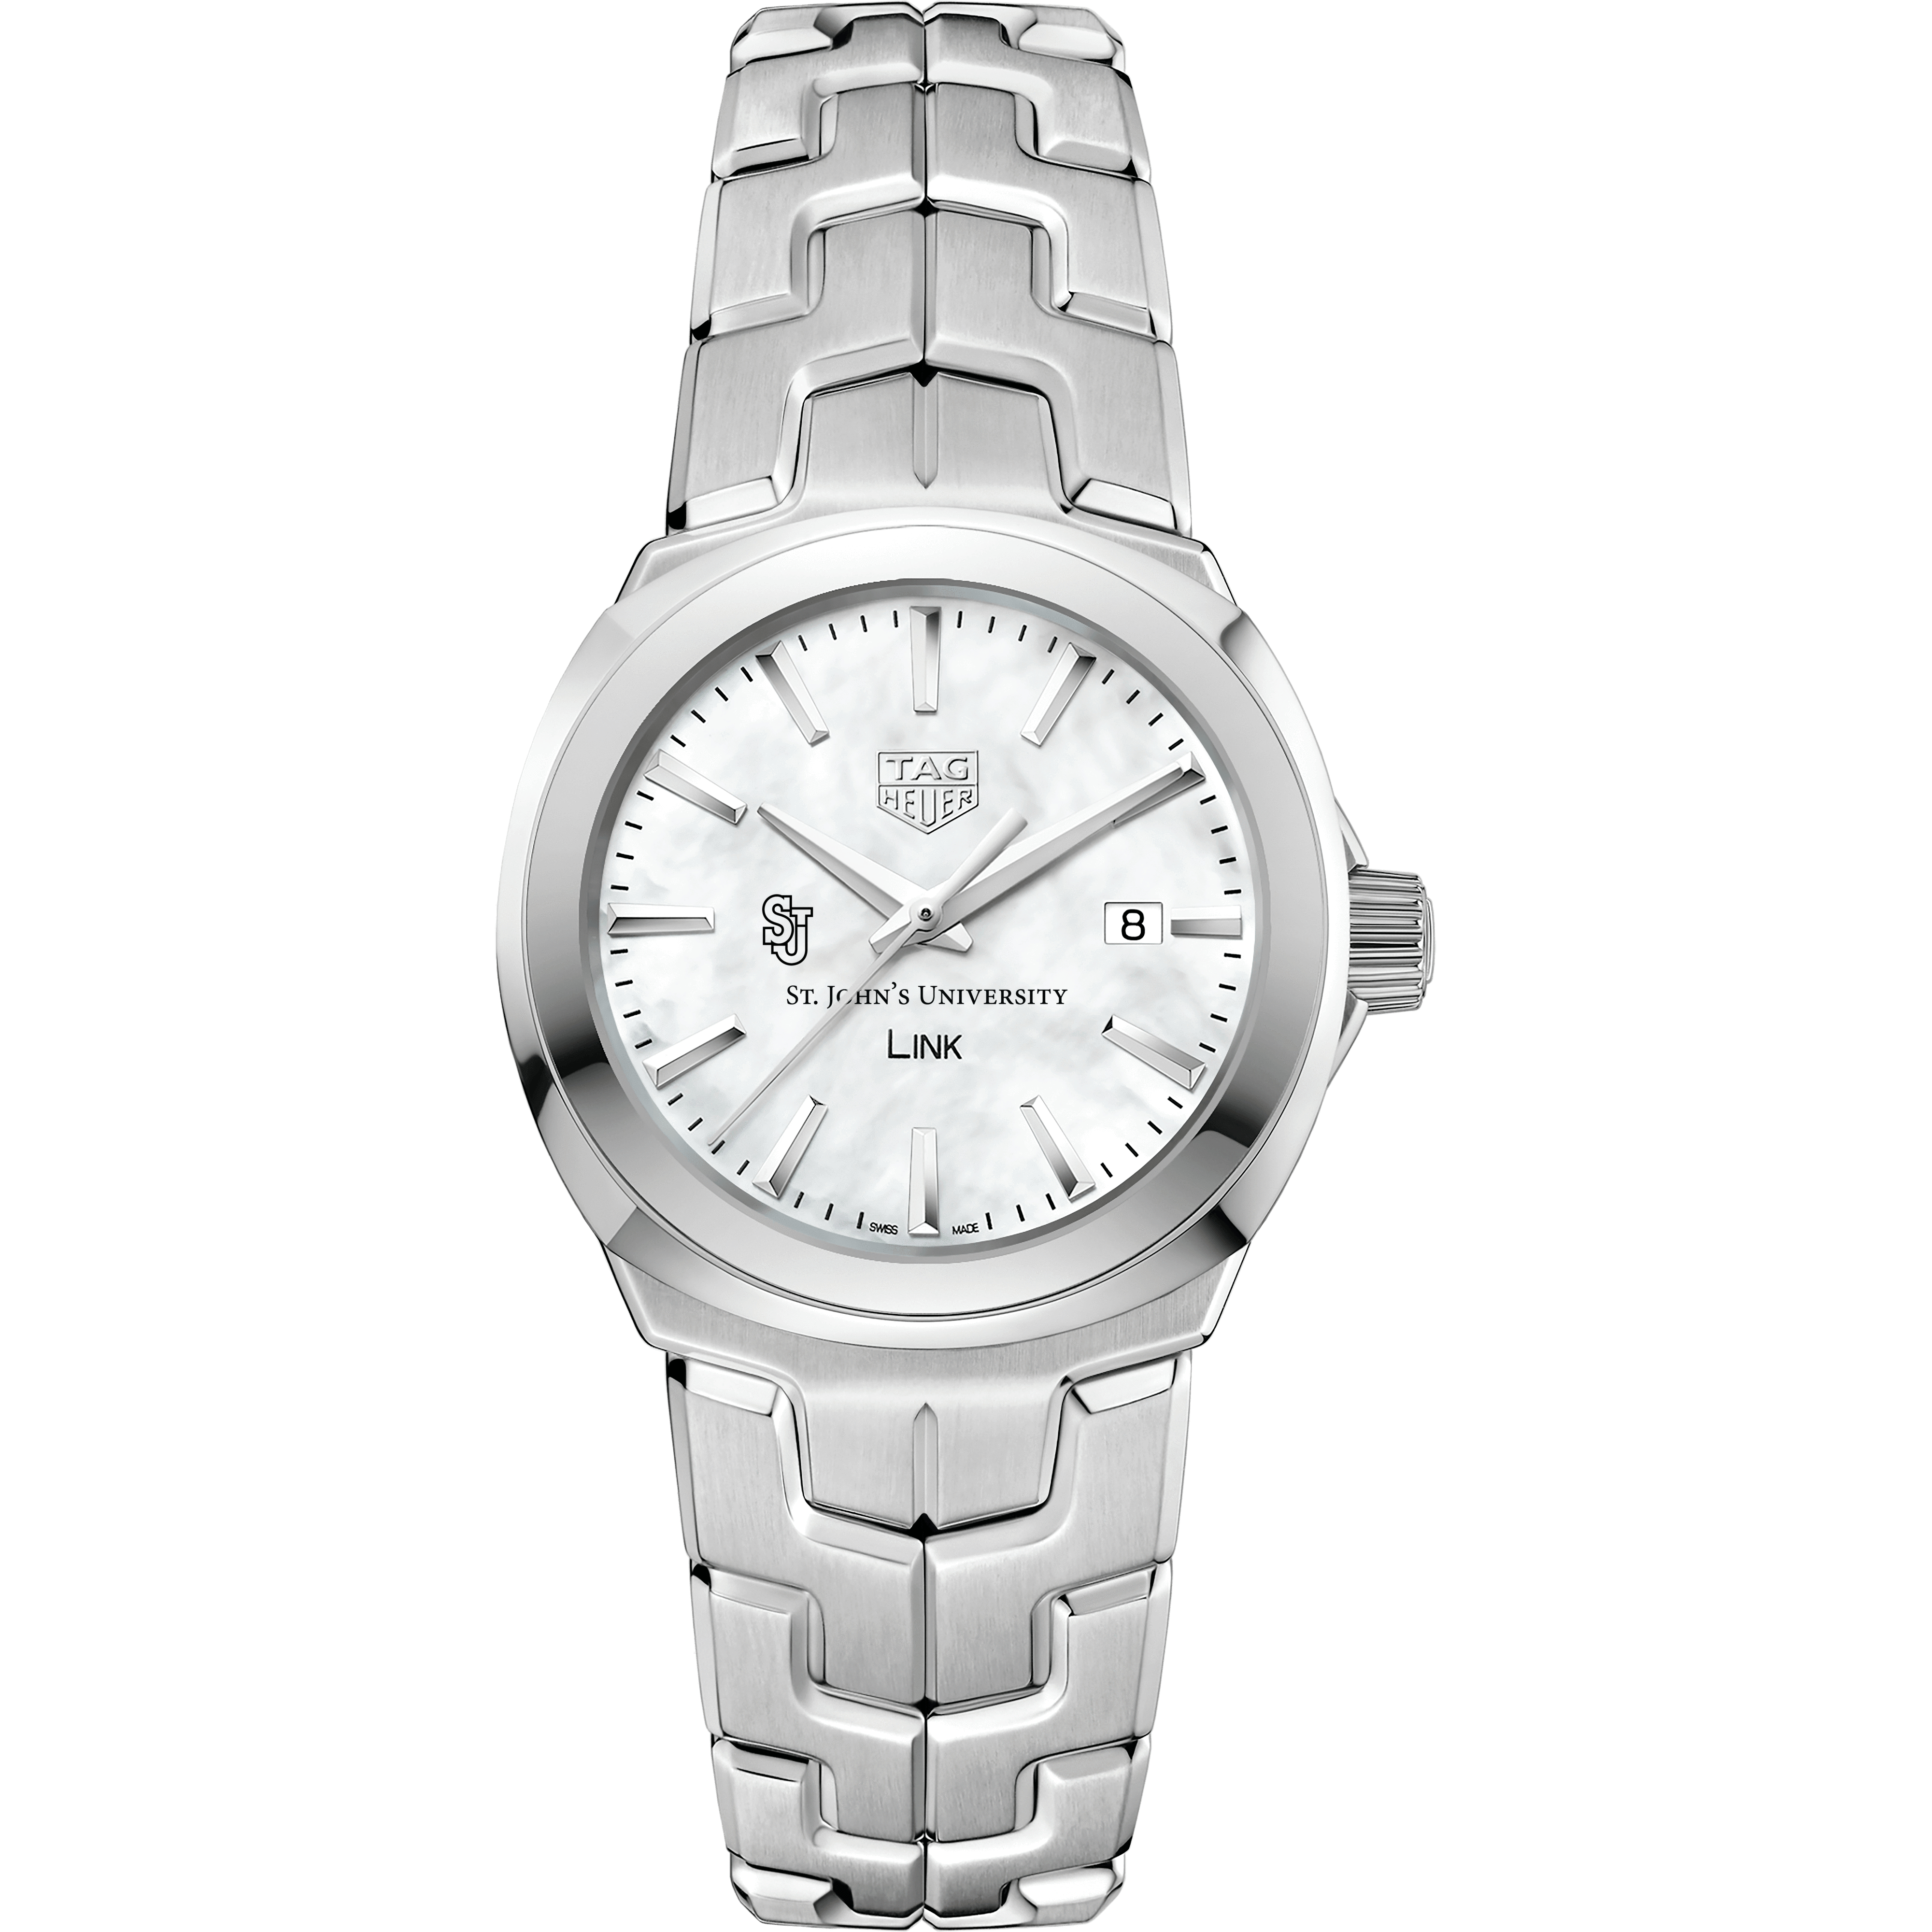 St. John's University TAG Heuer LINK for Women - Image 2